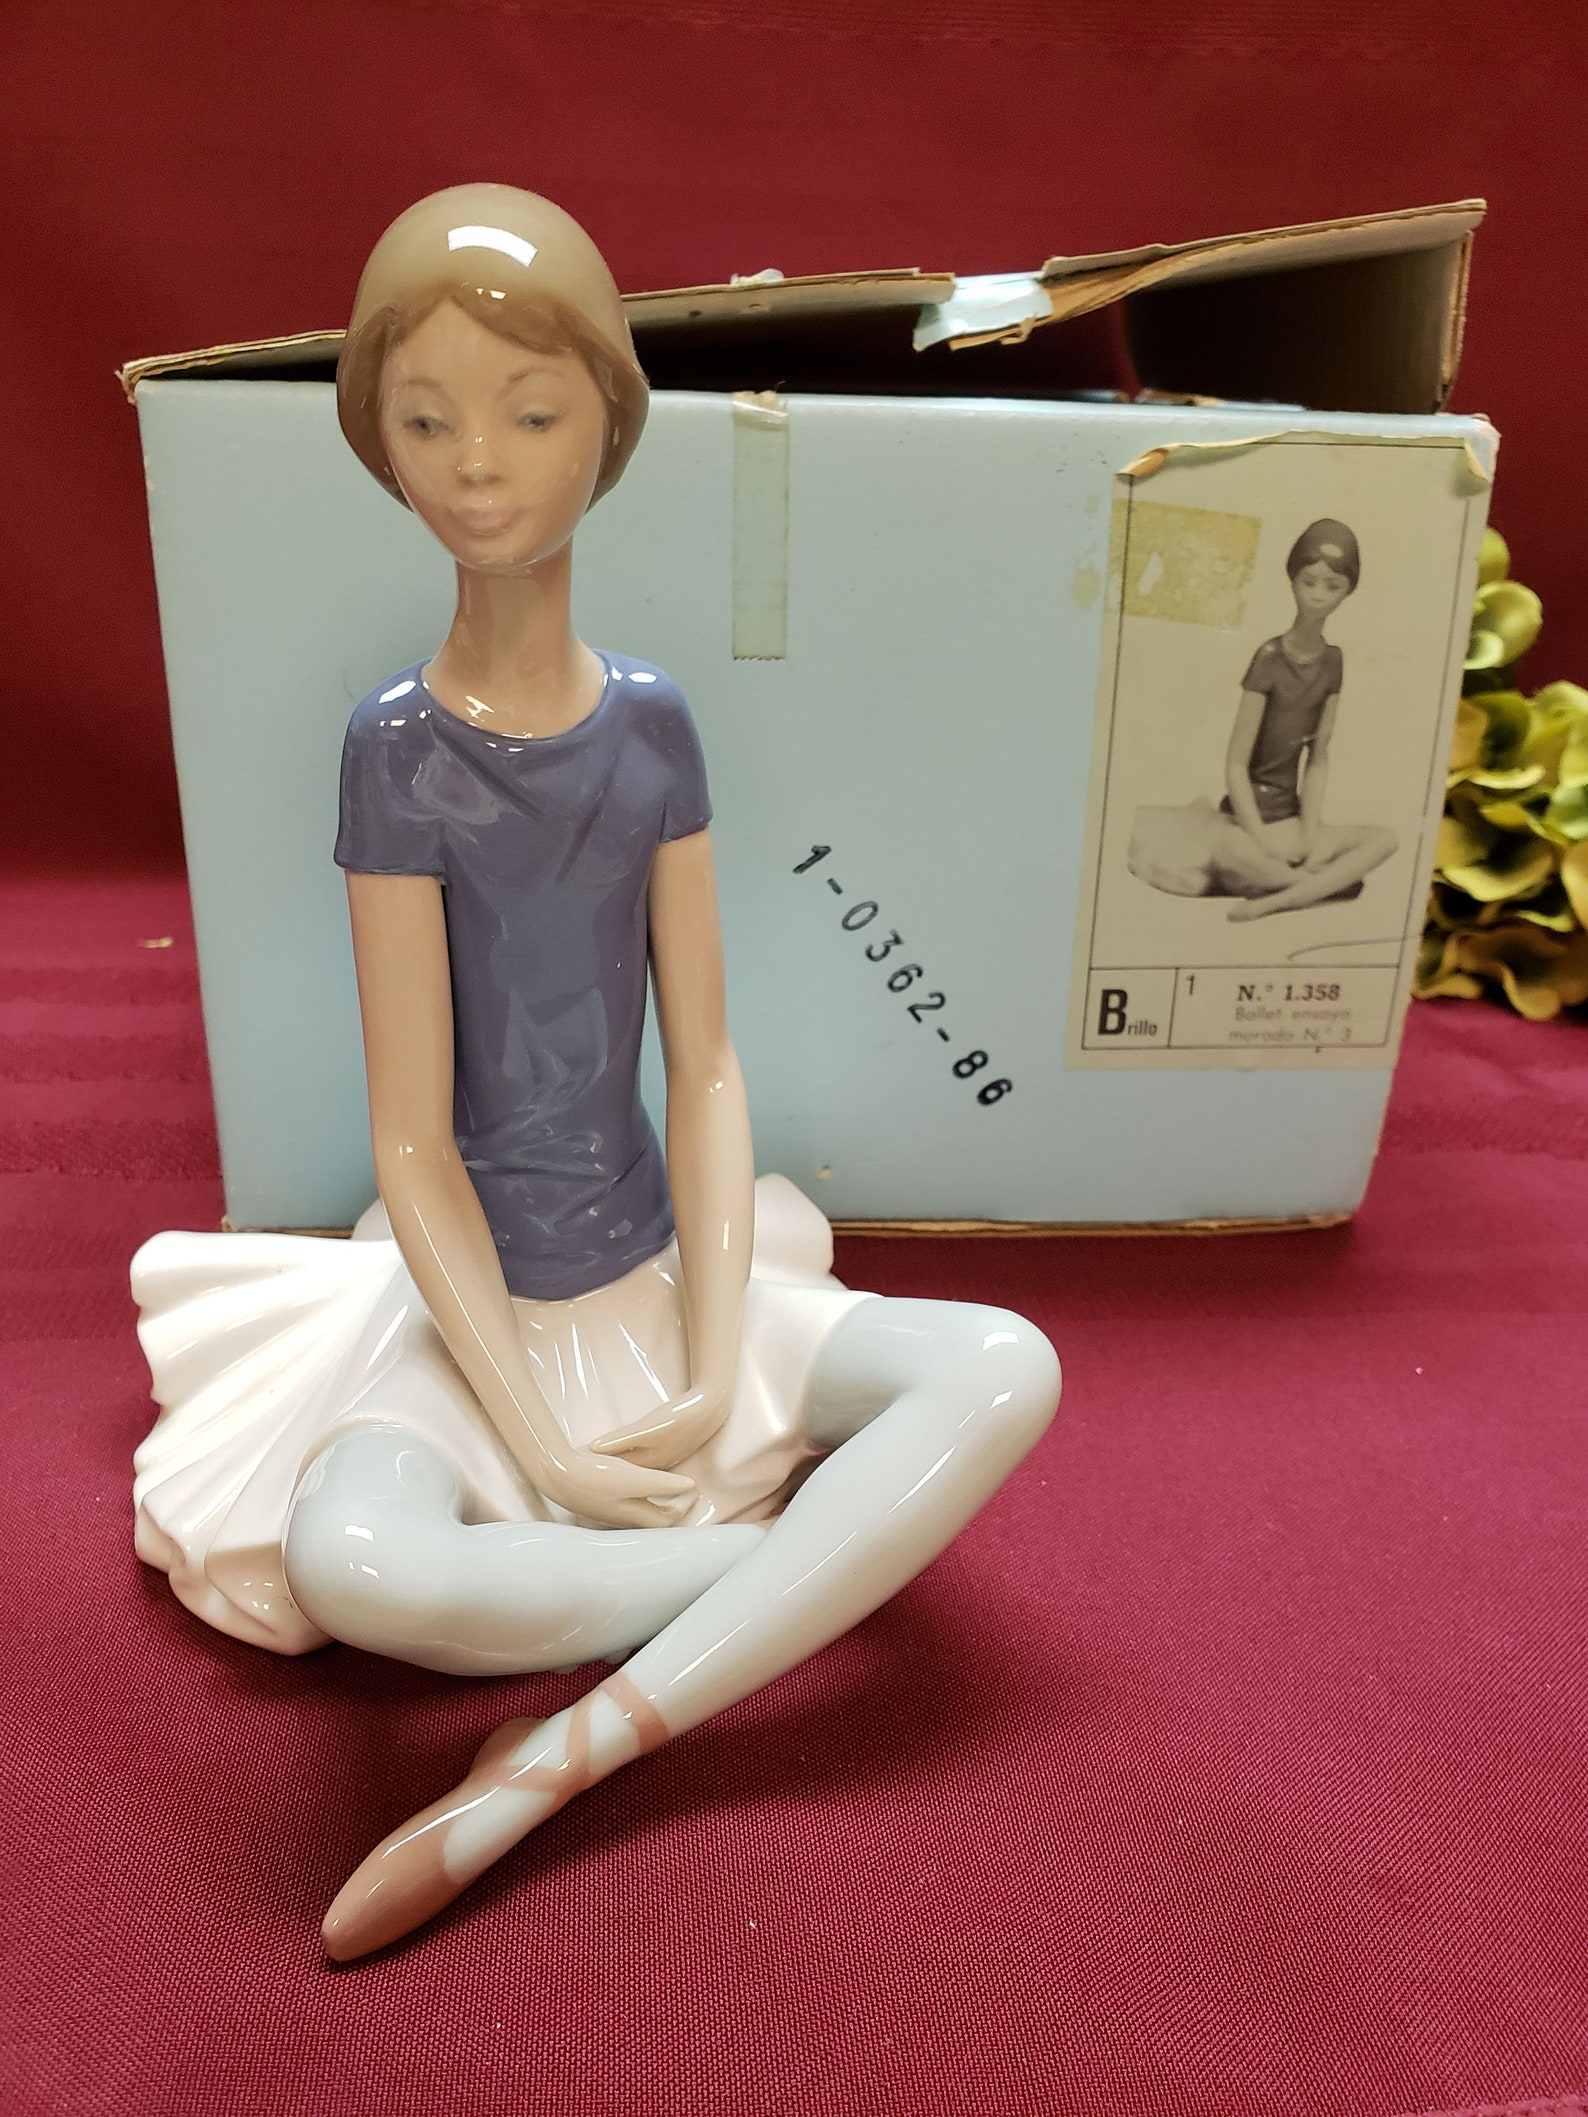 lladro retired beth, no. 5222, ballet girl, ballerina, 1978-1993, glossy porcelain, made in spain, purple ballet shoes, original